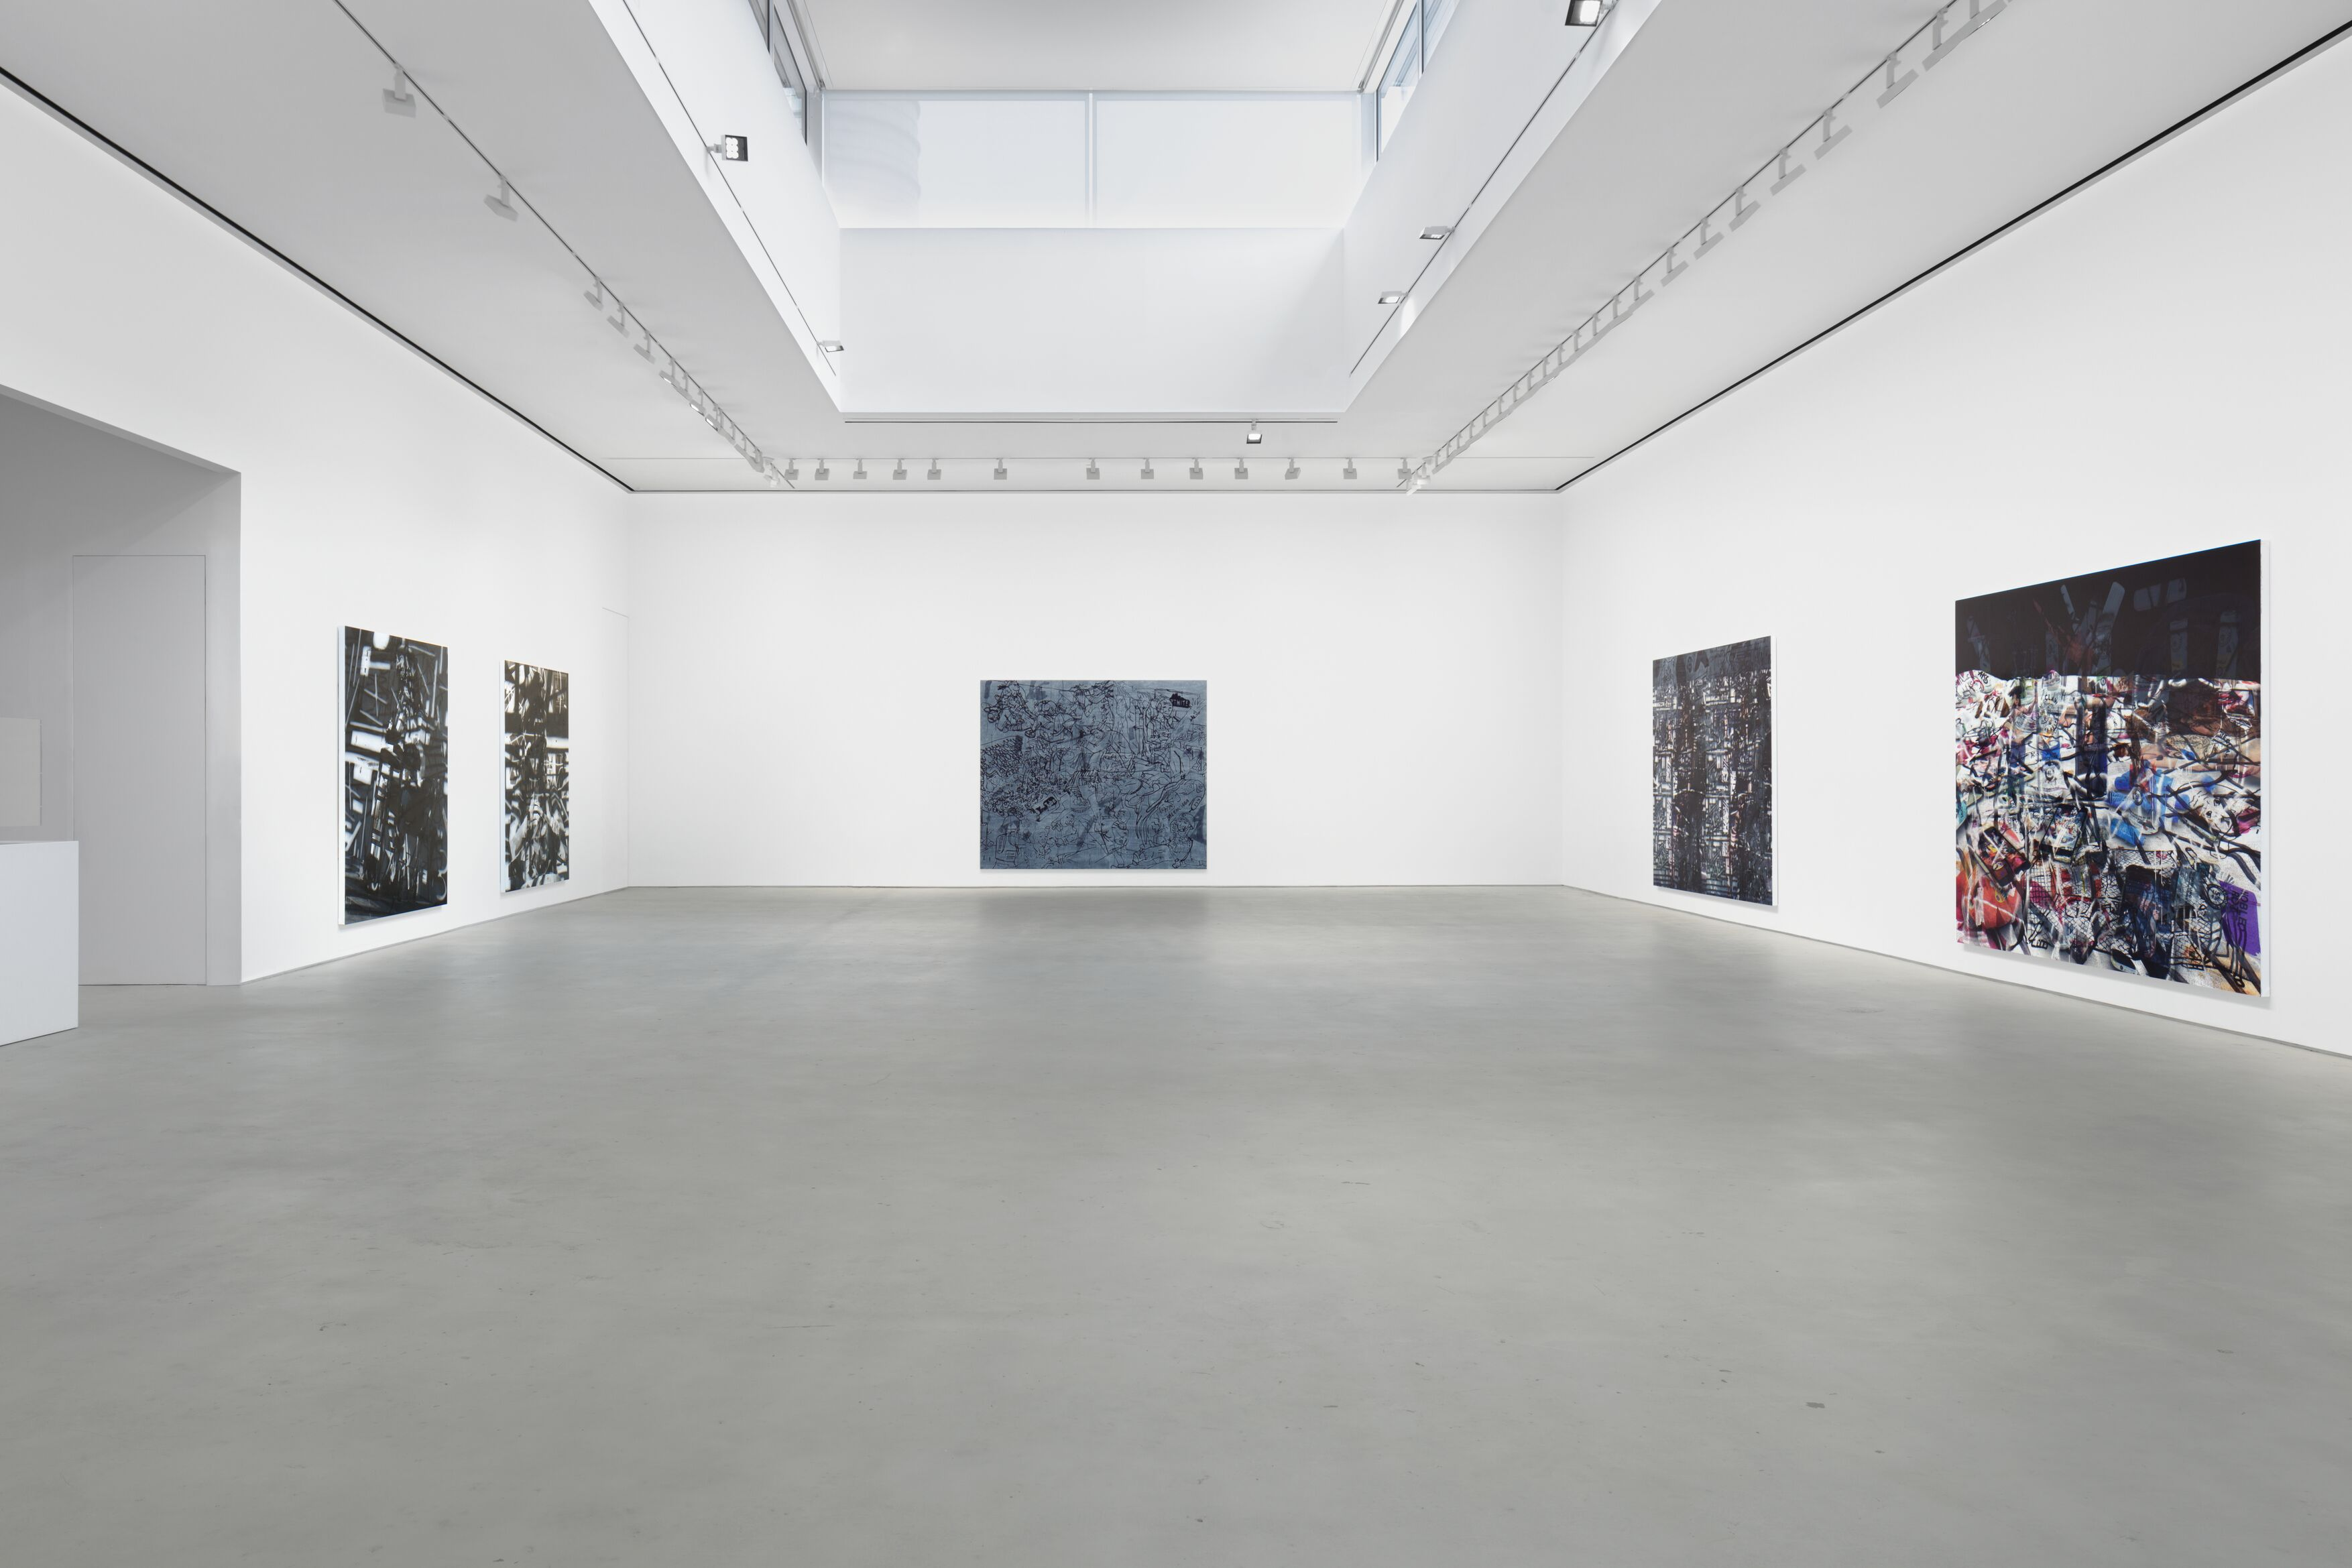 Installation view, 'Avery Singer. Reality Ender,' Hauser & Wirth New York, 22nd Street, 2021. Picturing: 'Studio,' 2019; 'Sculptor,' 2021; 'Wojack Battle Scene,' 2021; 'Technique,' 2021; 'China Chalet,' 2021, © Avery Singer, courtesy the artist, Hauser & Wirth, and Kraupa-Tuskany Zeidler, Berlin Photo: Lance Brewer